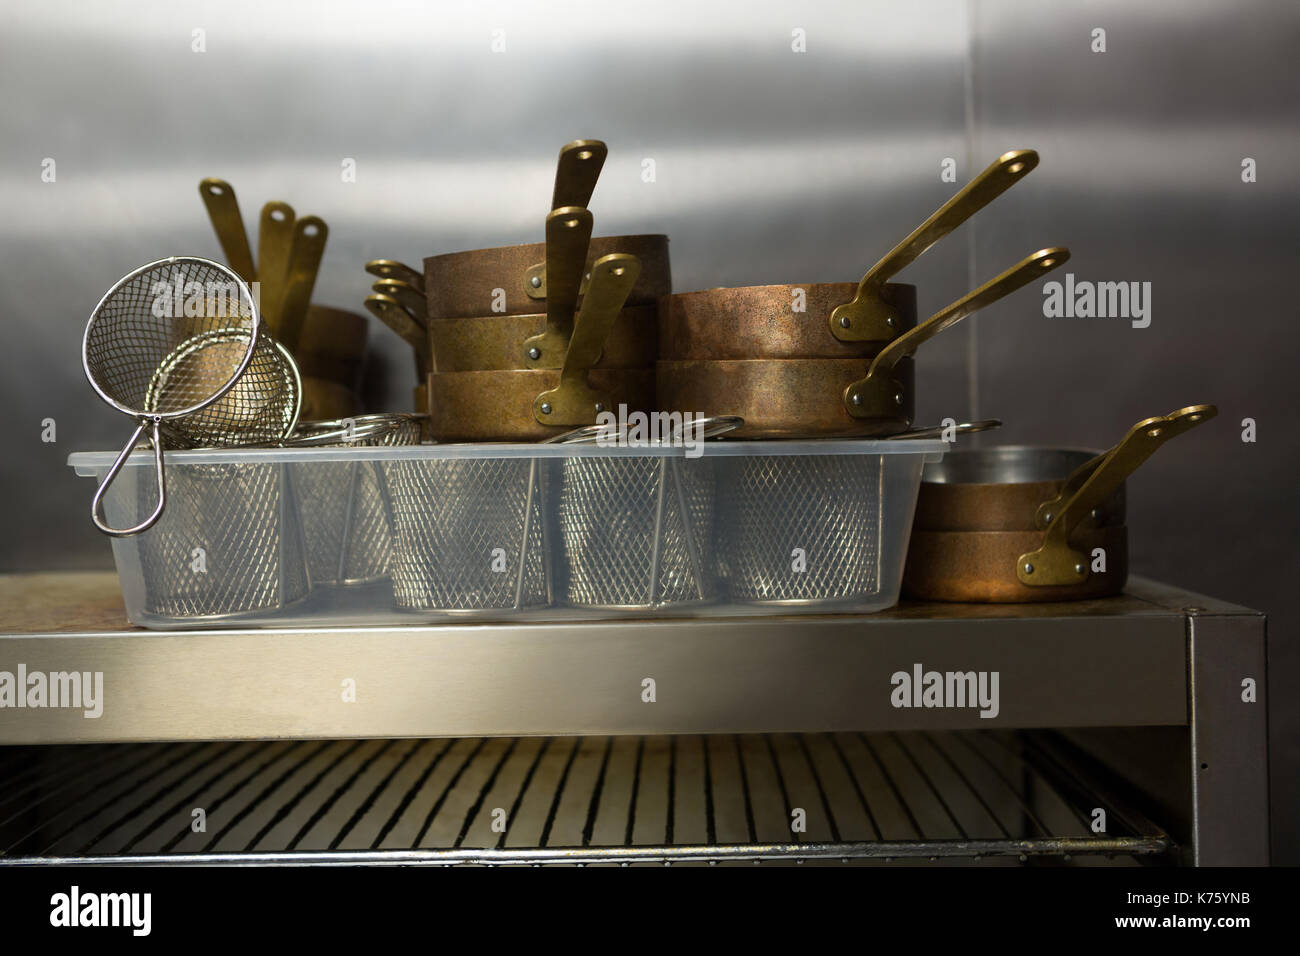 Close-up of kitchen utensils at restaurant - Stock Image